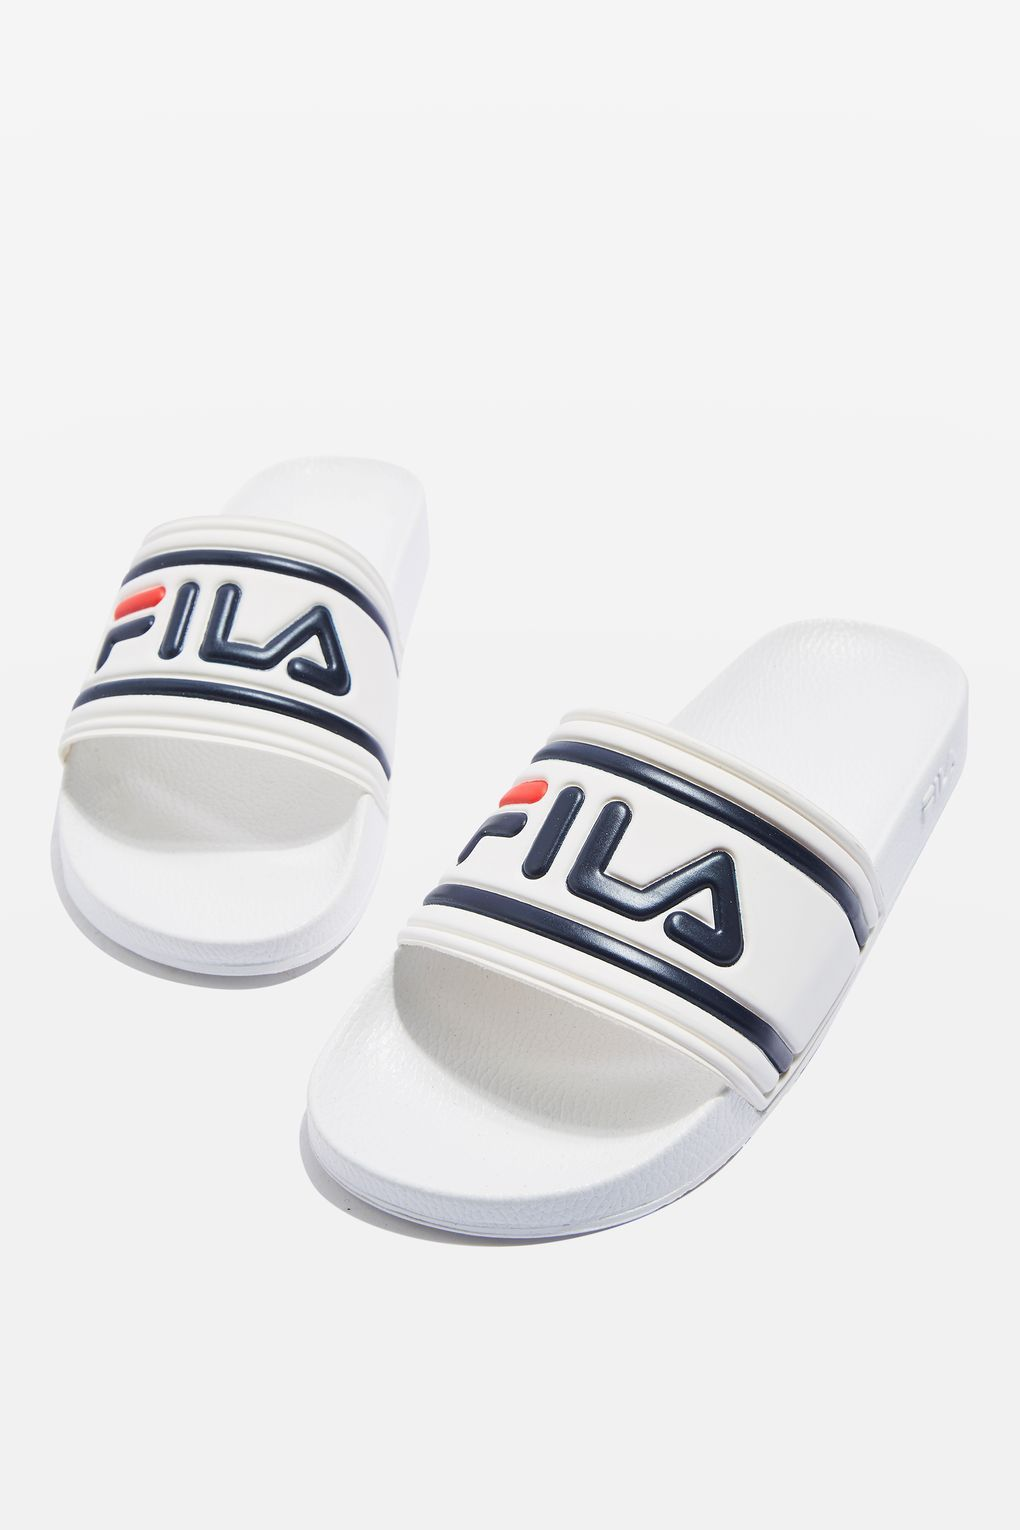 20832aa2ba5c69 Morro Bay Slides by Fila - New In Shoes - New In - Topshop